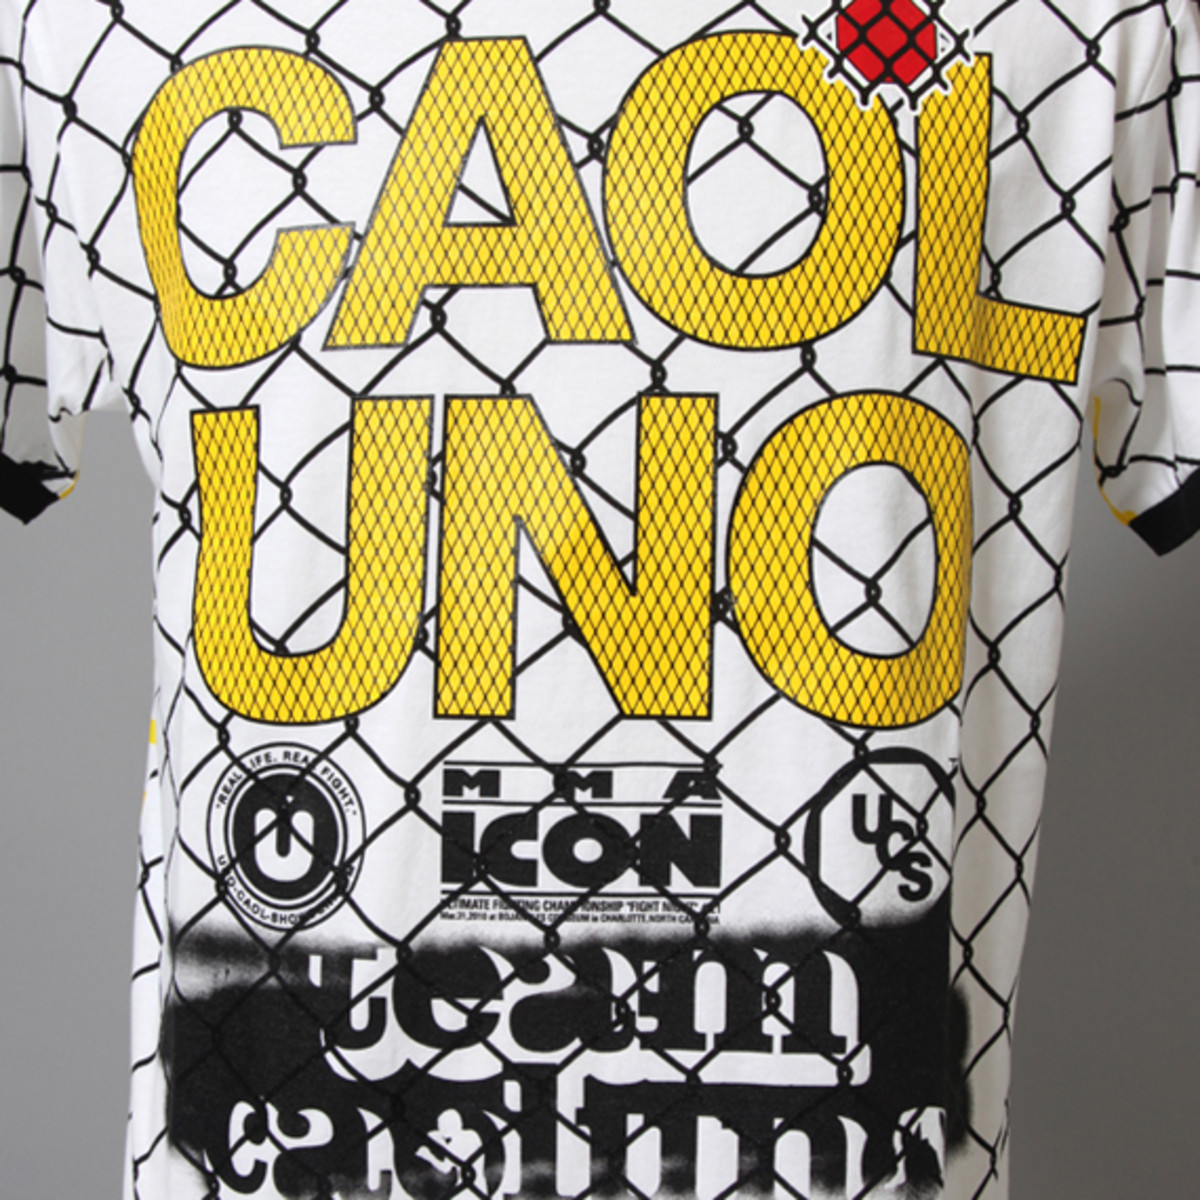 Team Caol Uno Fight Night 21 Replica T-Shirt 3